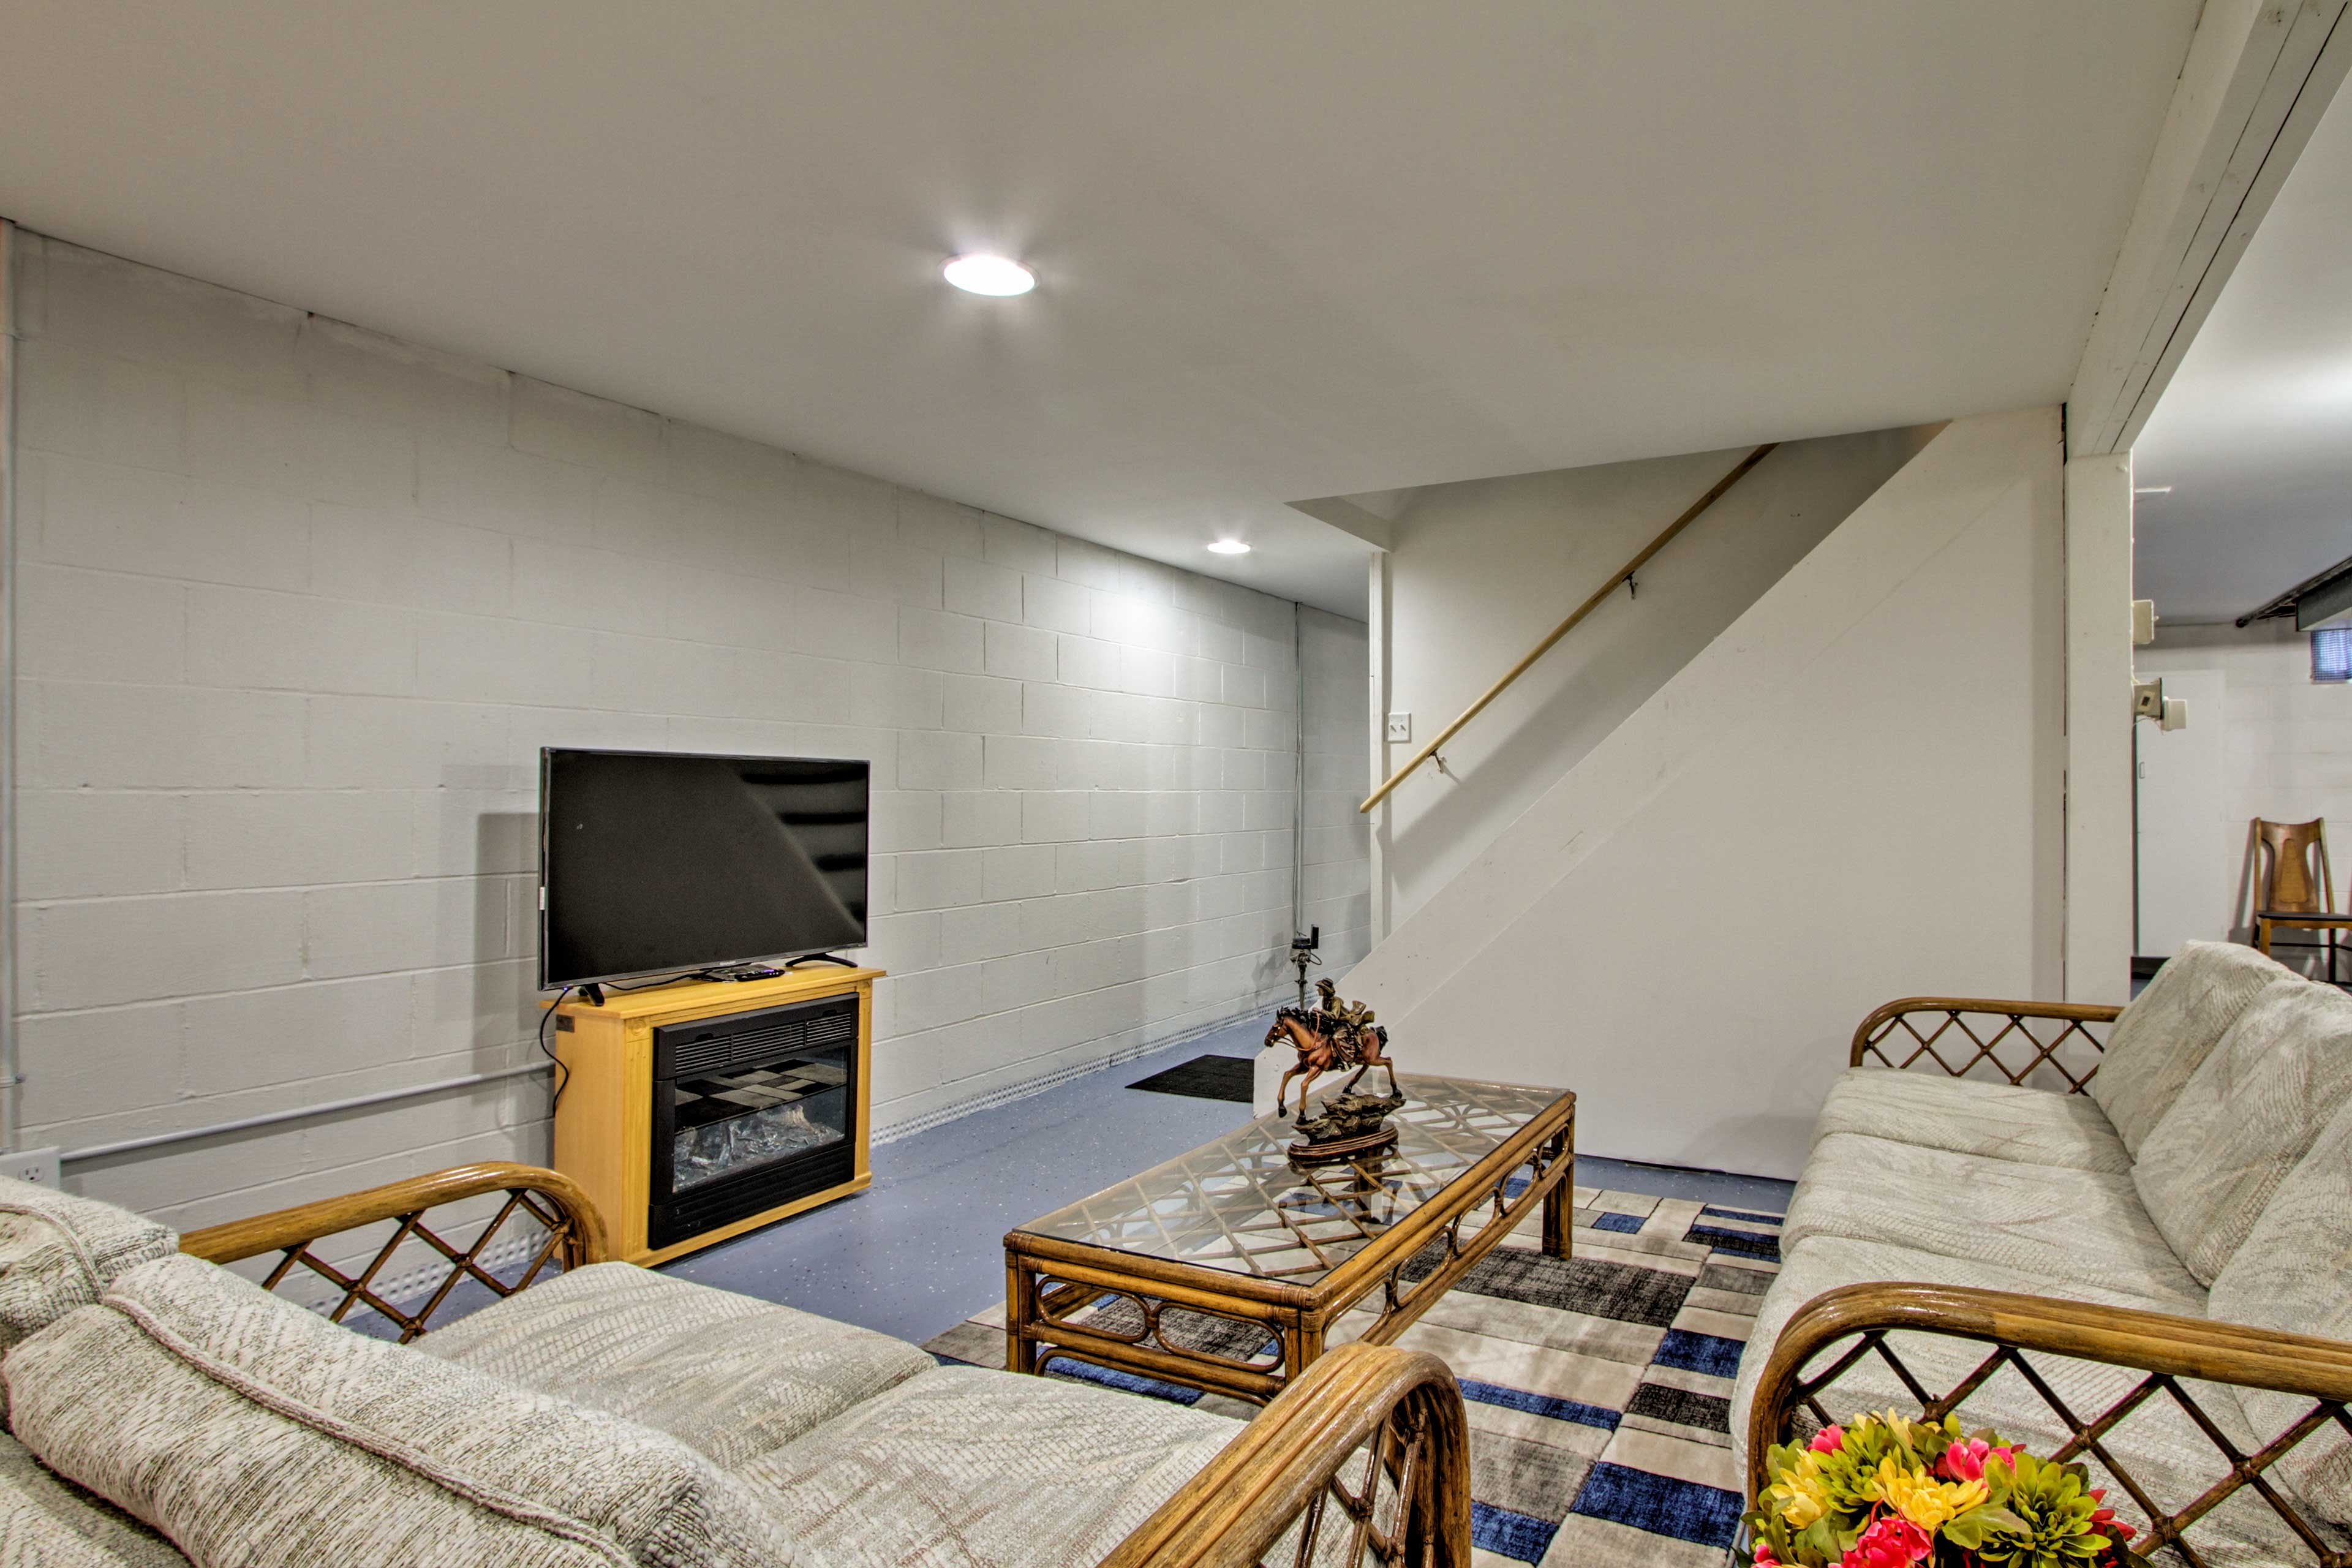 The finished basement includes a flat-screen TV and electric fireplace.